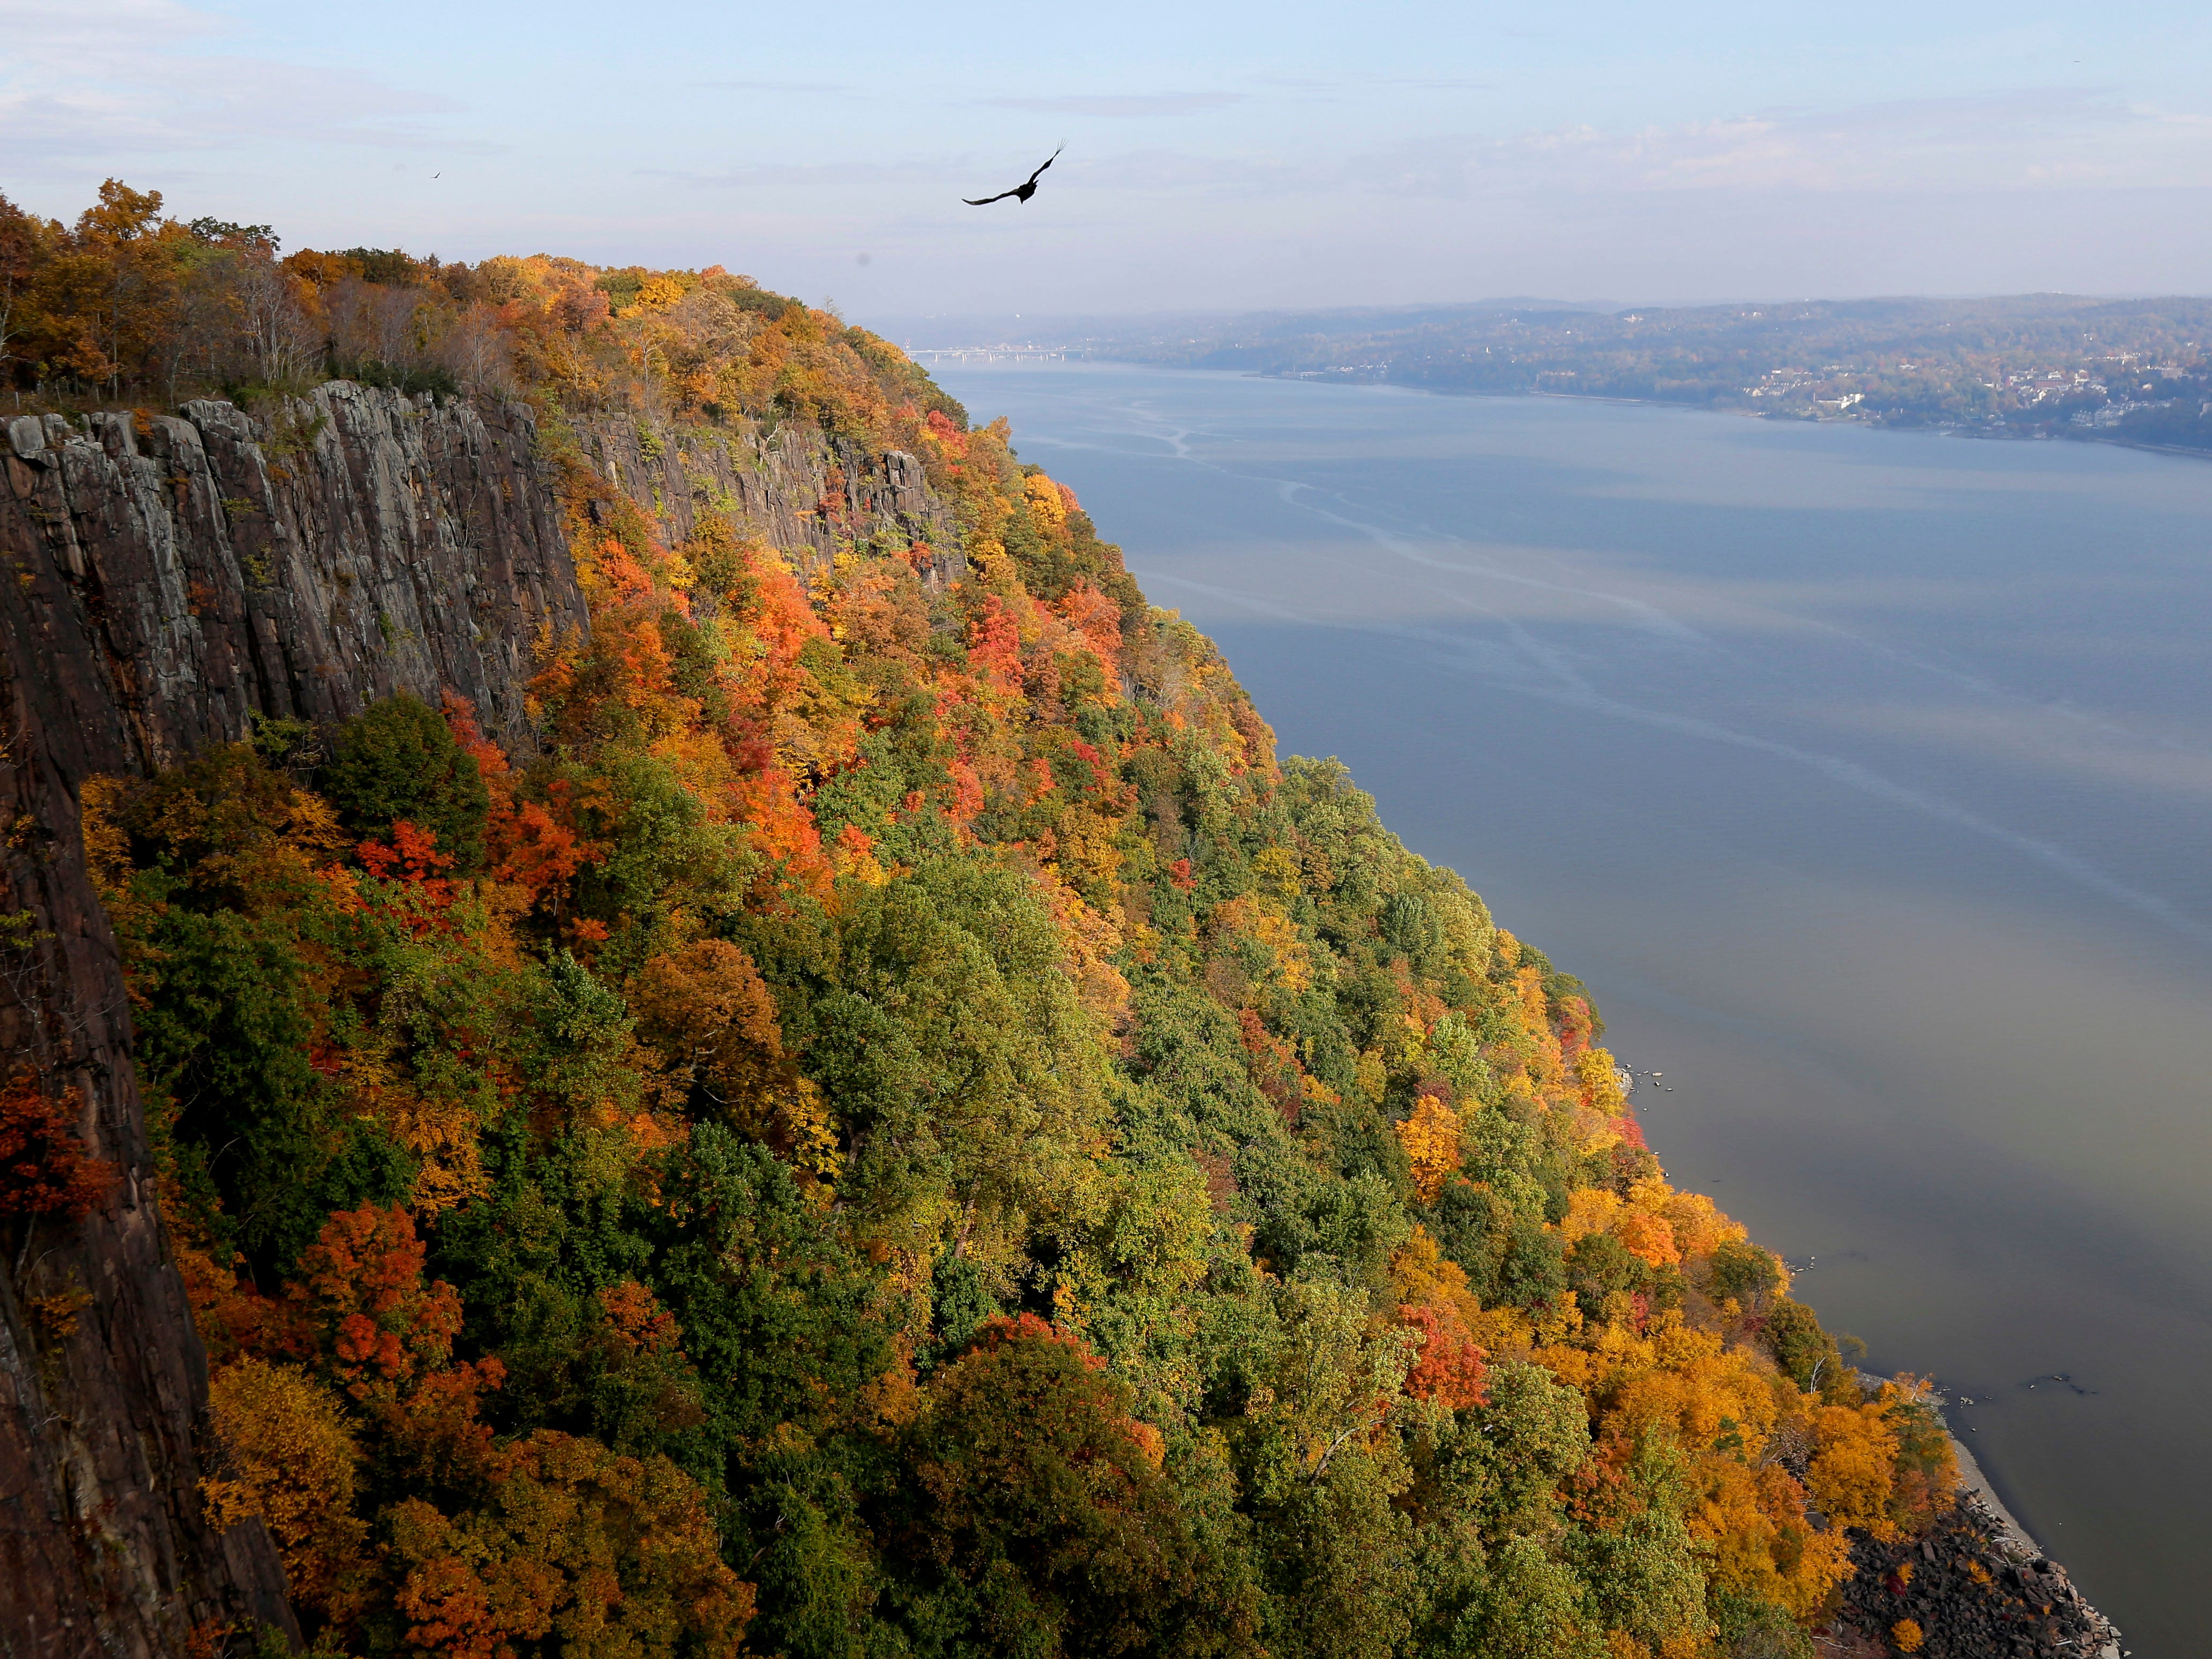 A vulture flies above fall foliage on the Palisades next to the Hudson River in Alpine, N.J., Thursday, Nov. 1, 2018.